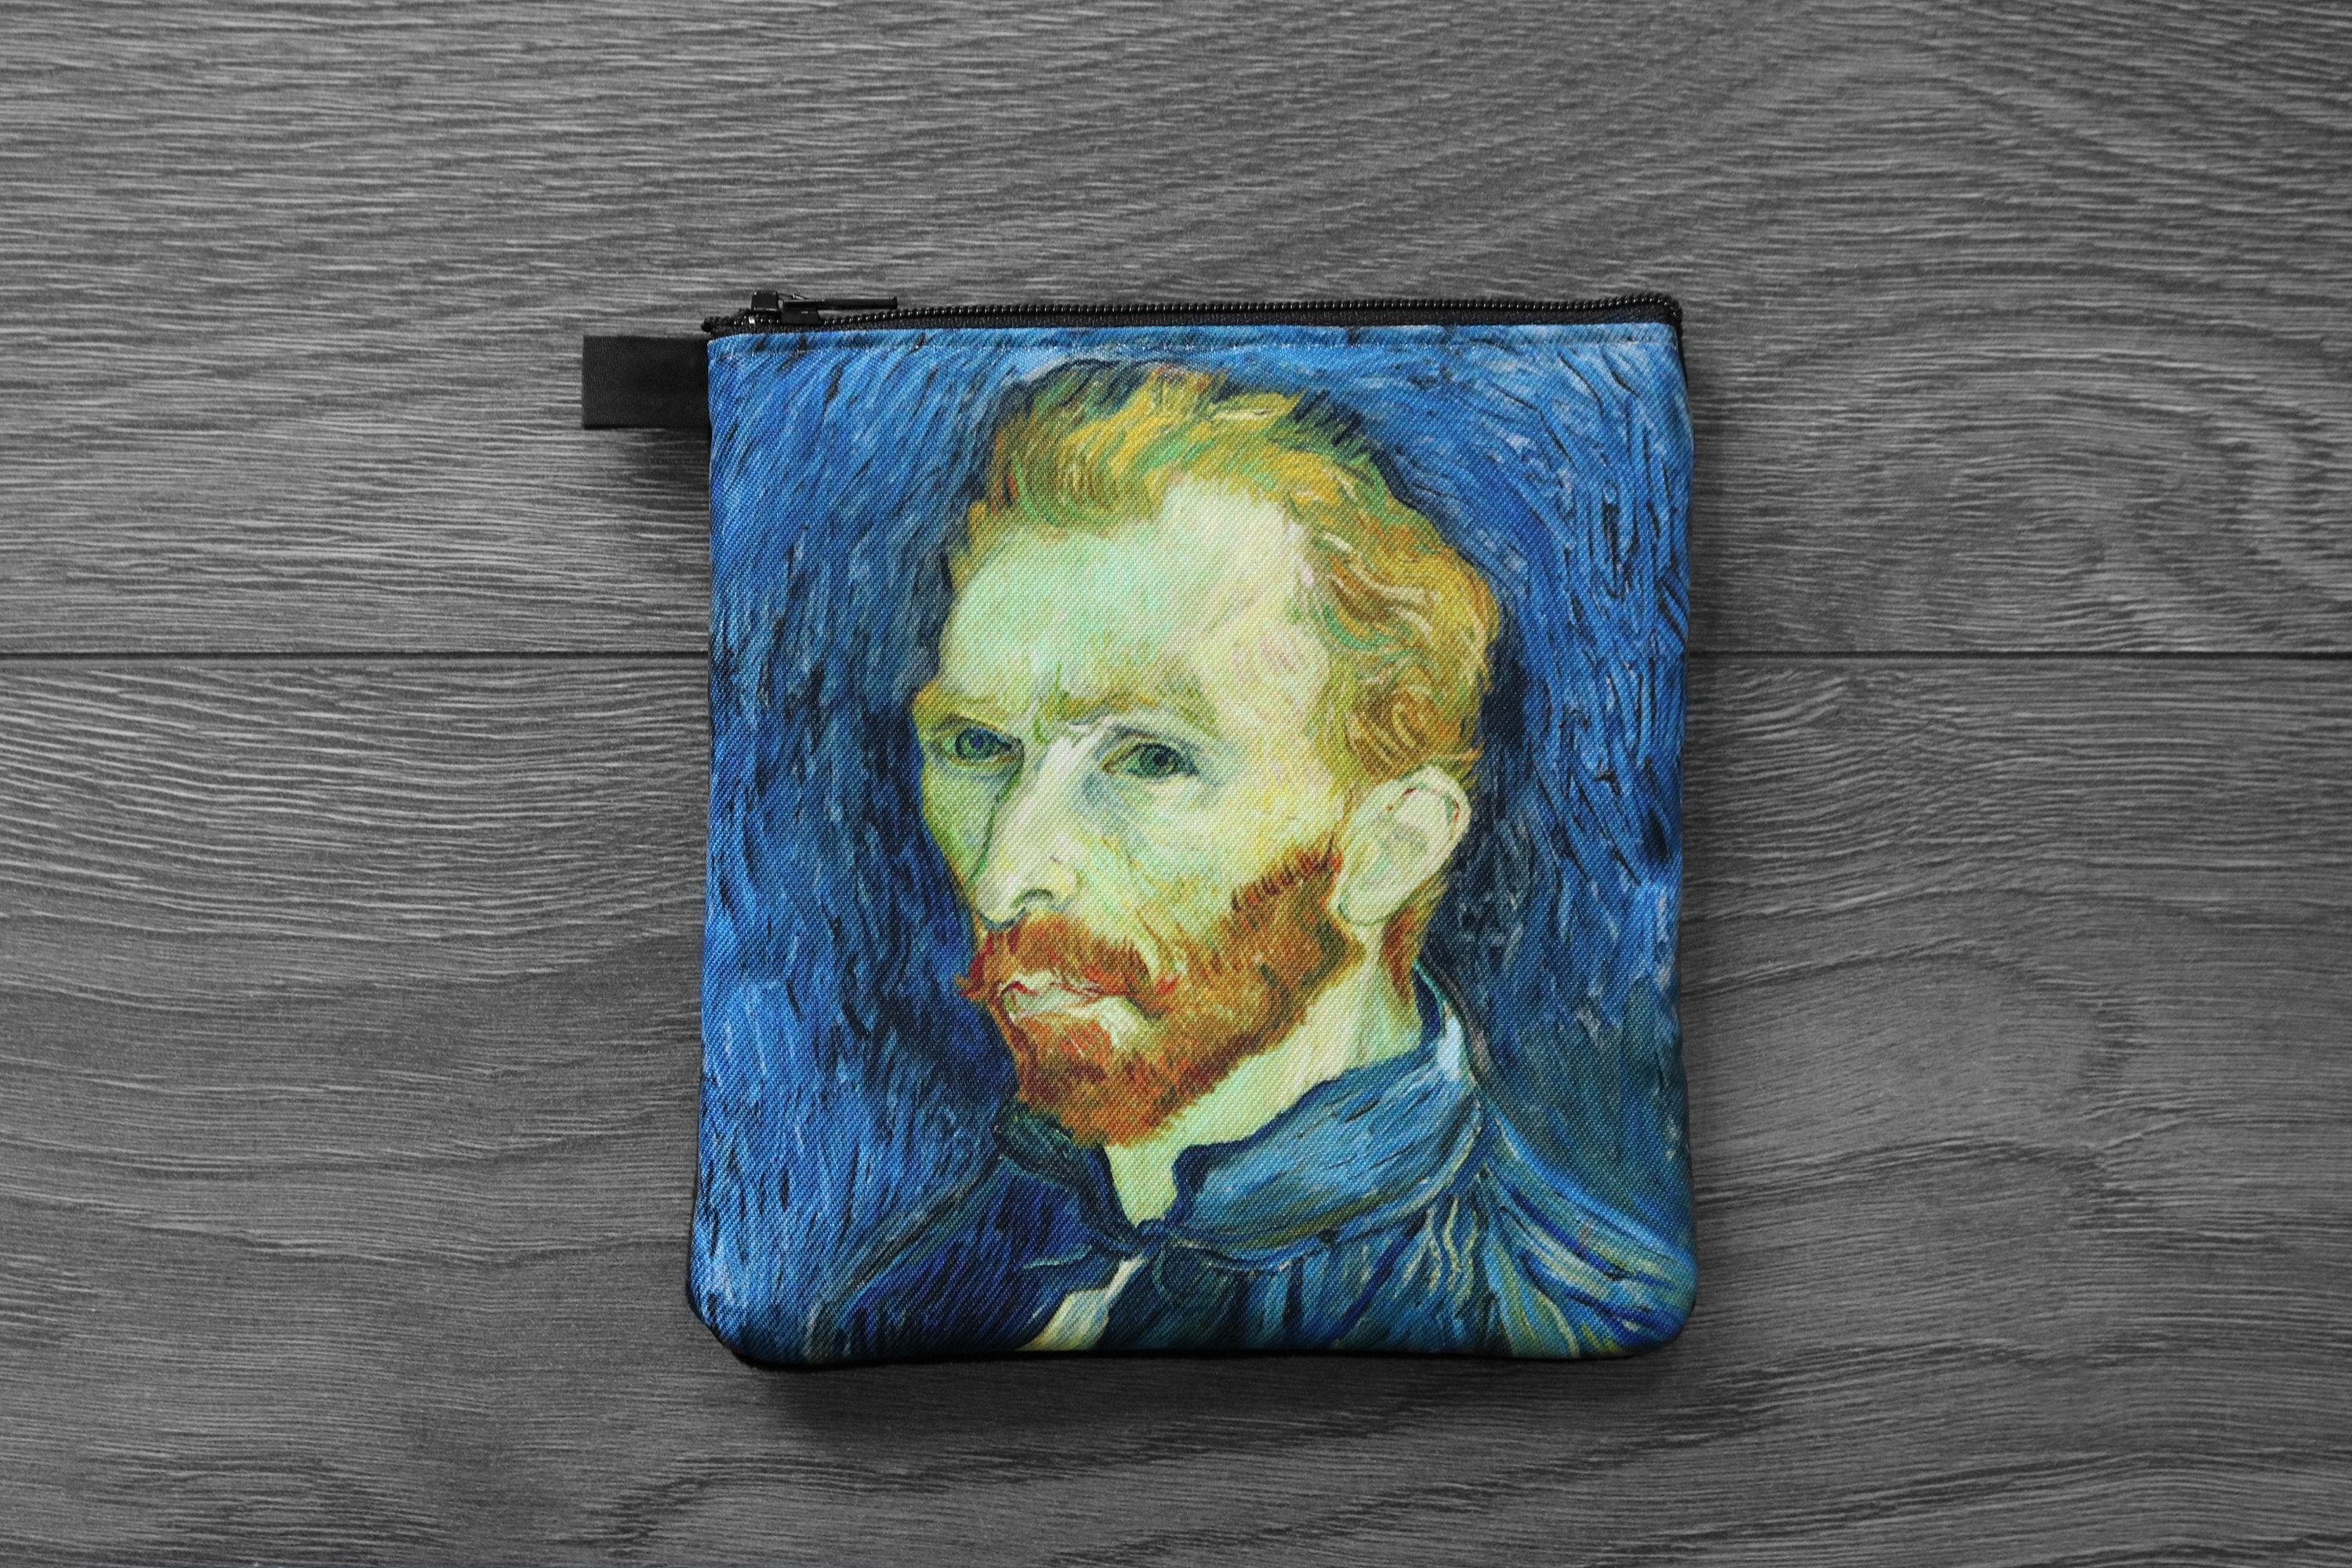 self portrait - lined twill coin purse - double sided print -vincent van gogh painting, 1889